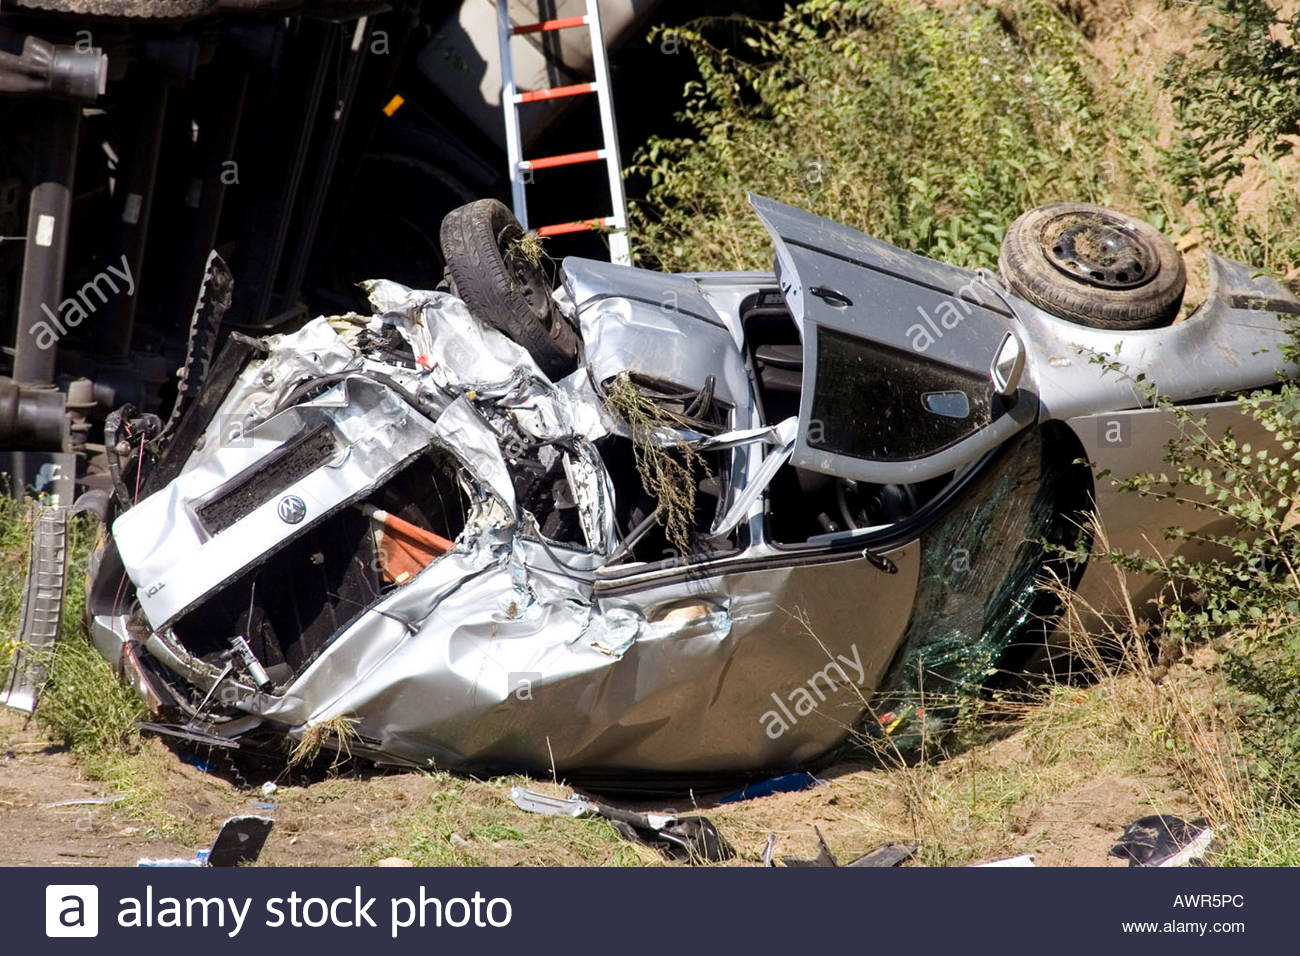 Verkehrsunfall Stock Photo: 9507627 - Alamy